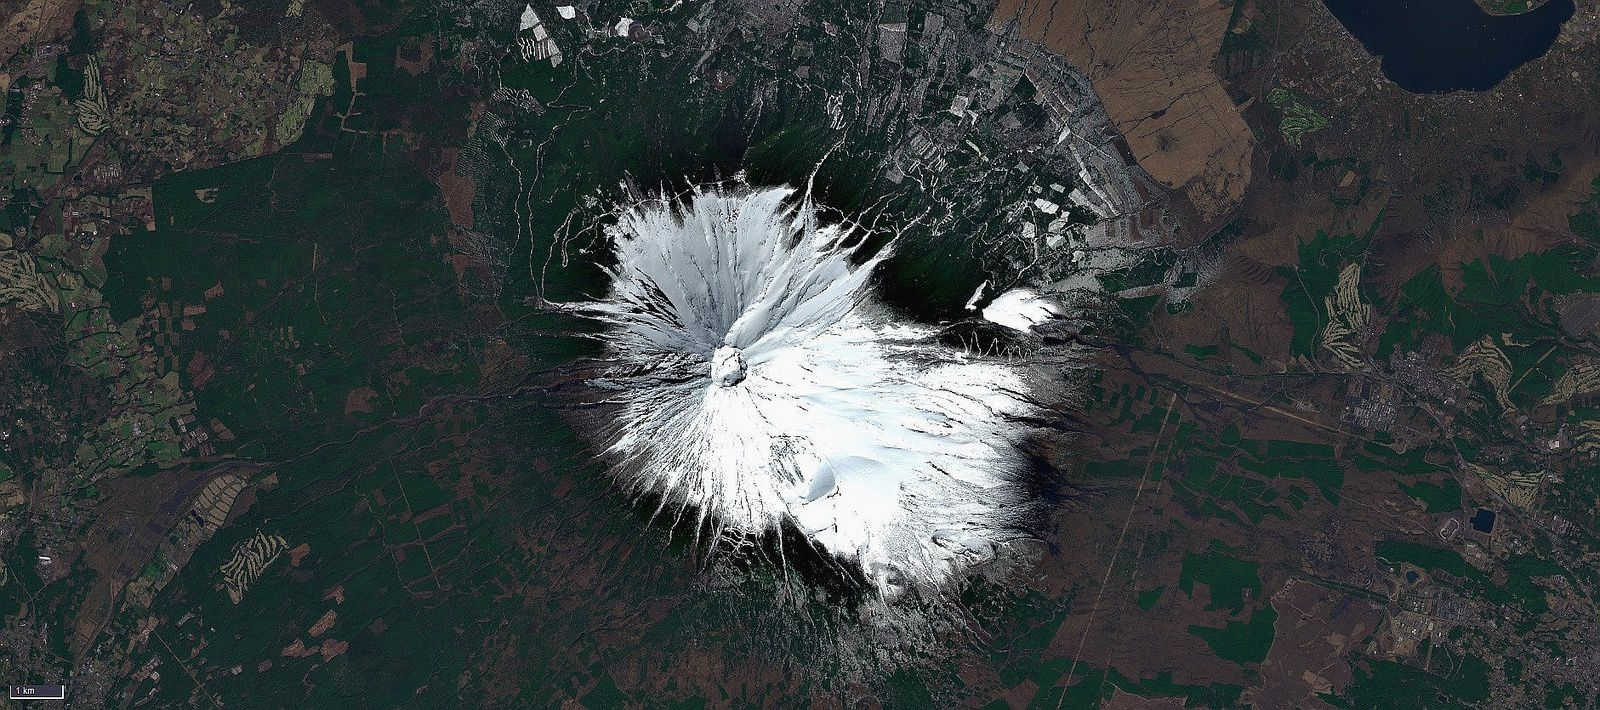 Fuji-San under the snow on 29.03.2018 - image Sentinel 2